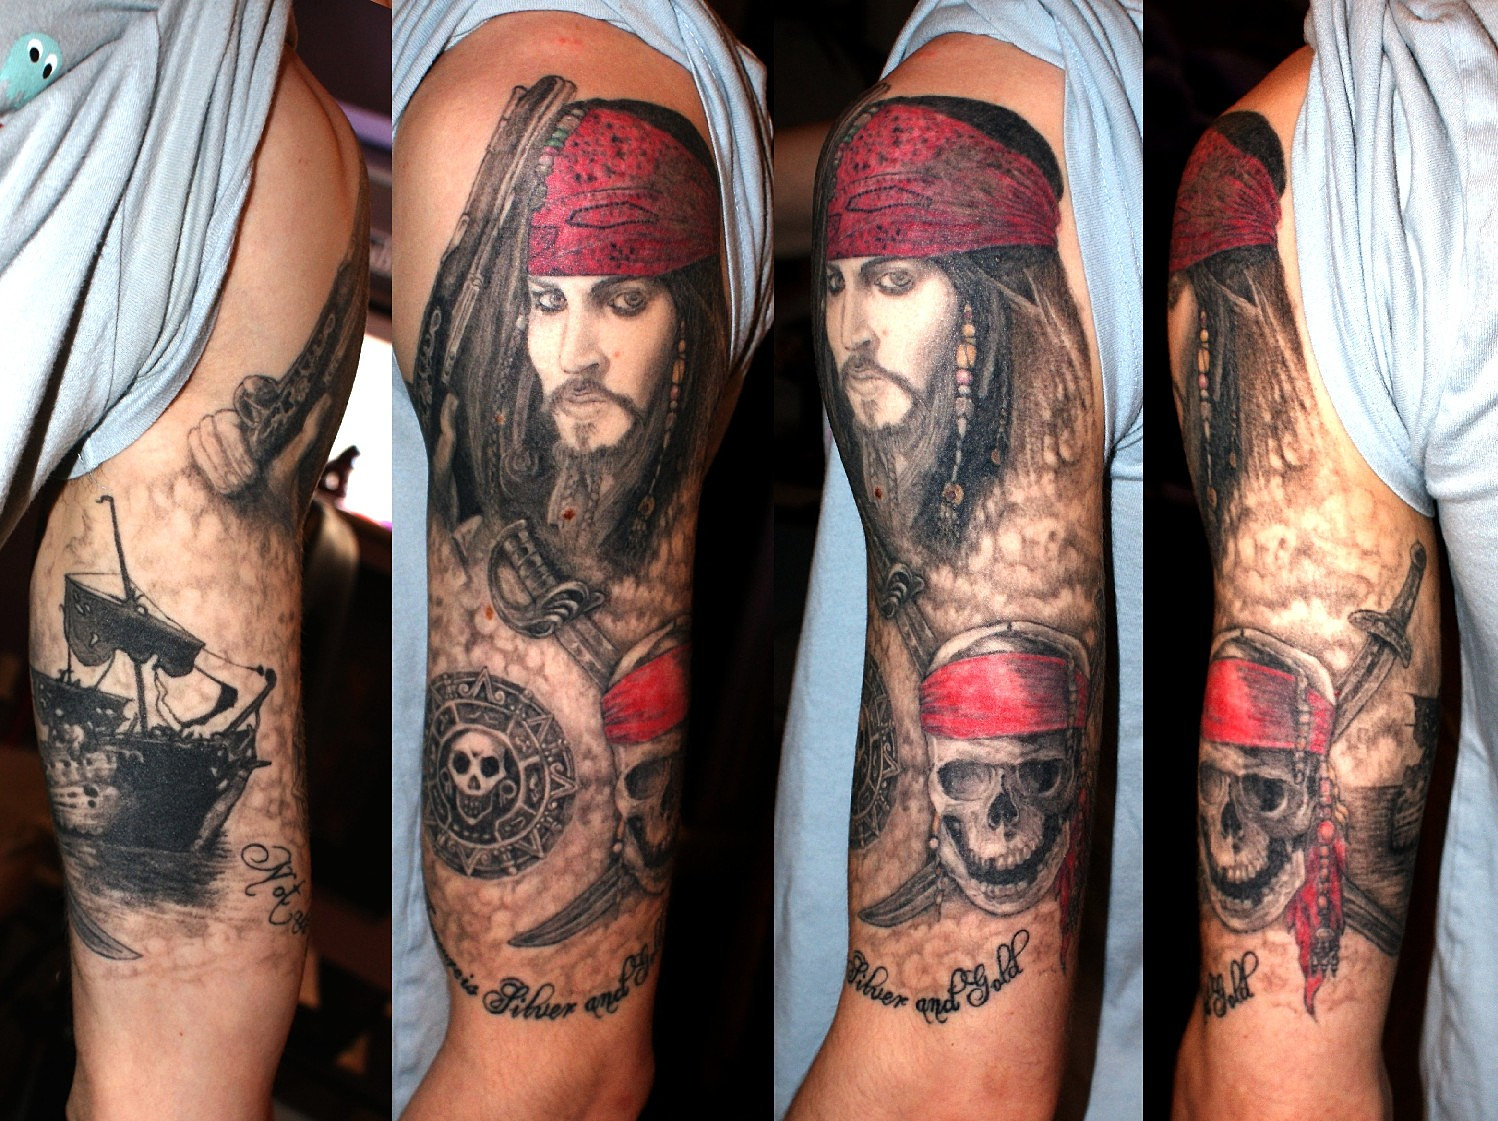 white horse tattoo studio berkshire pirates of the caribbean sleeve. Black Bedroom Furniture Sets. Home Design Ideas